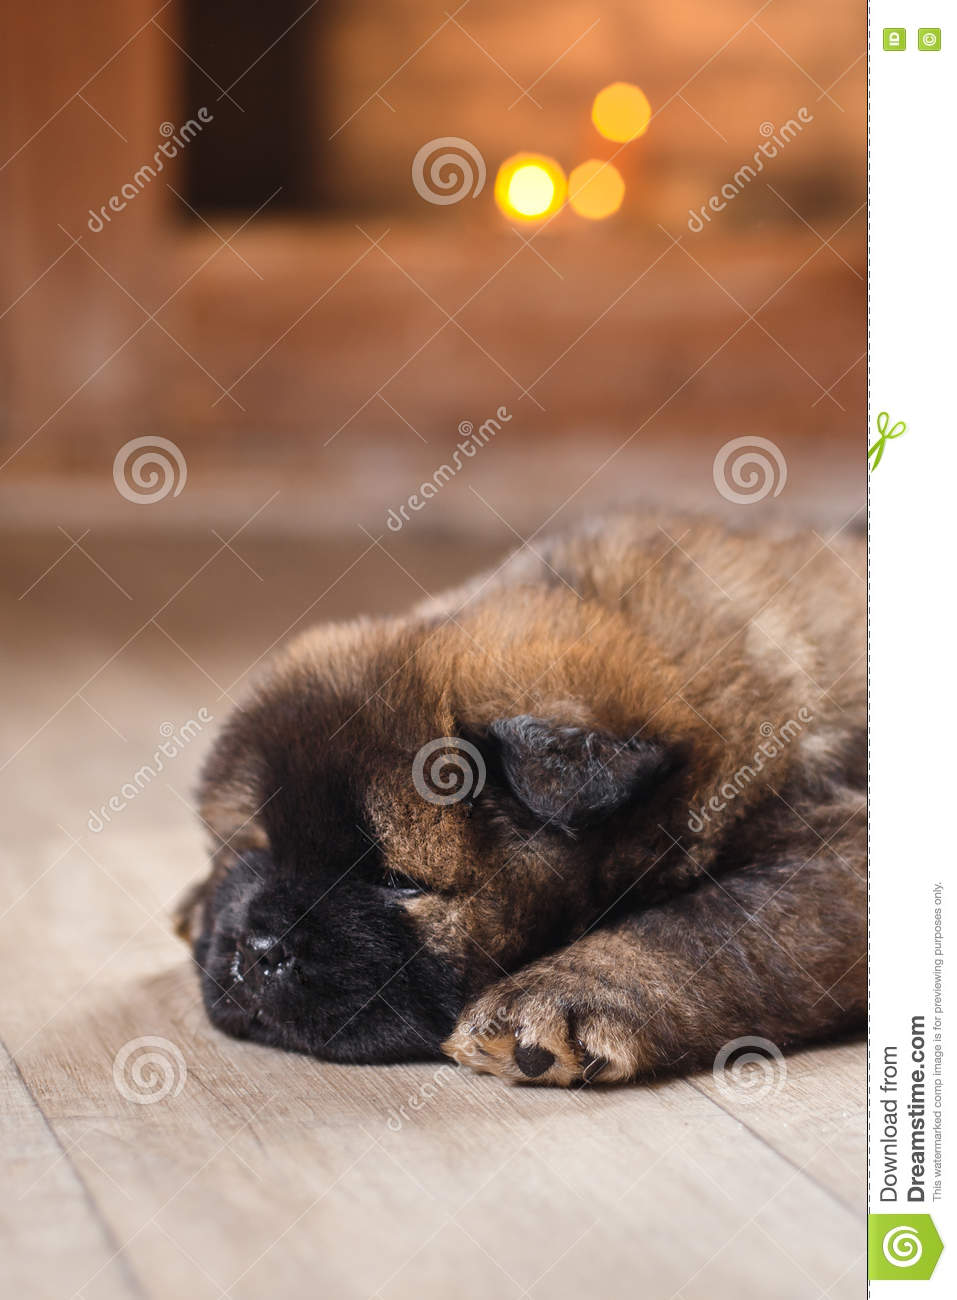 Dog Breed Chow Chow Puppy Stock Photo Image Of Black 74891136